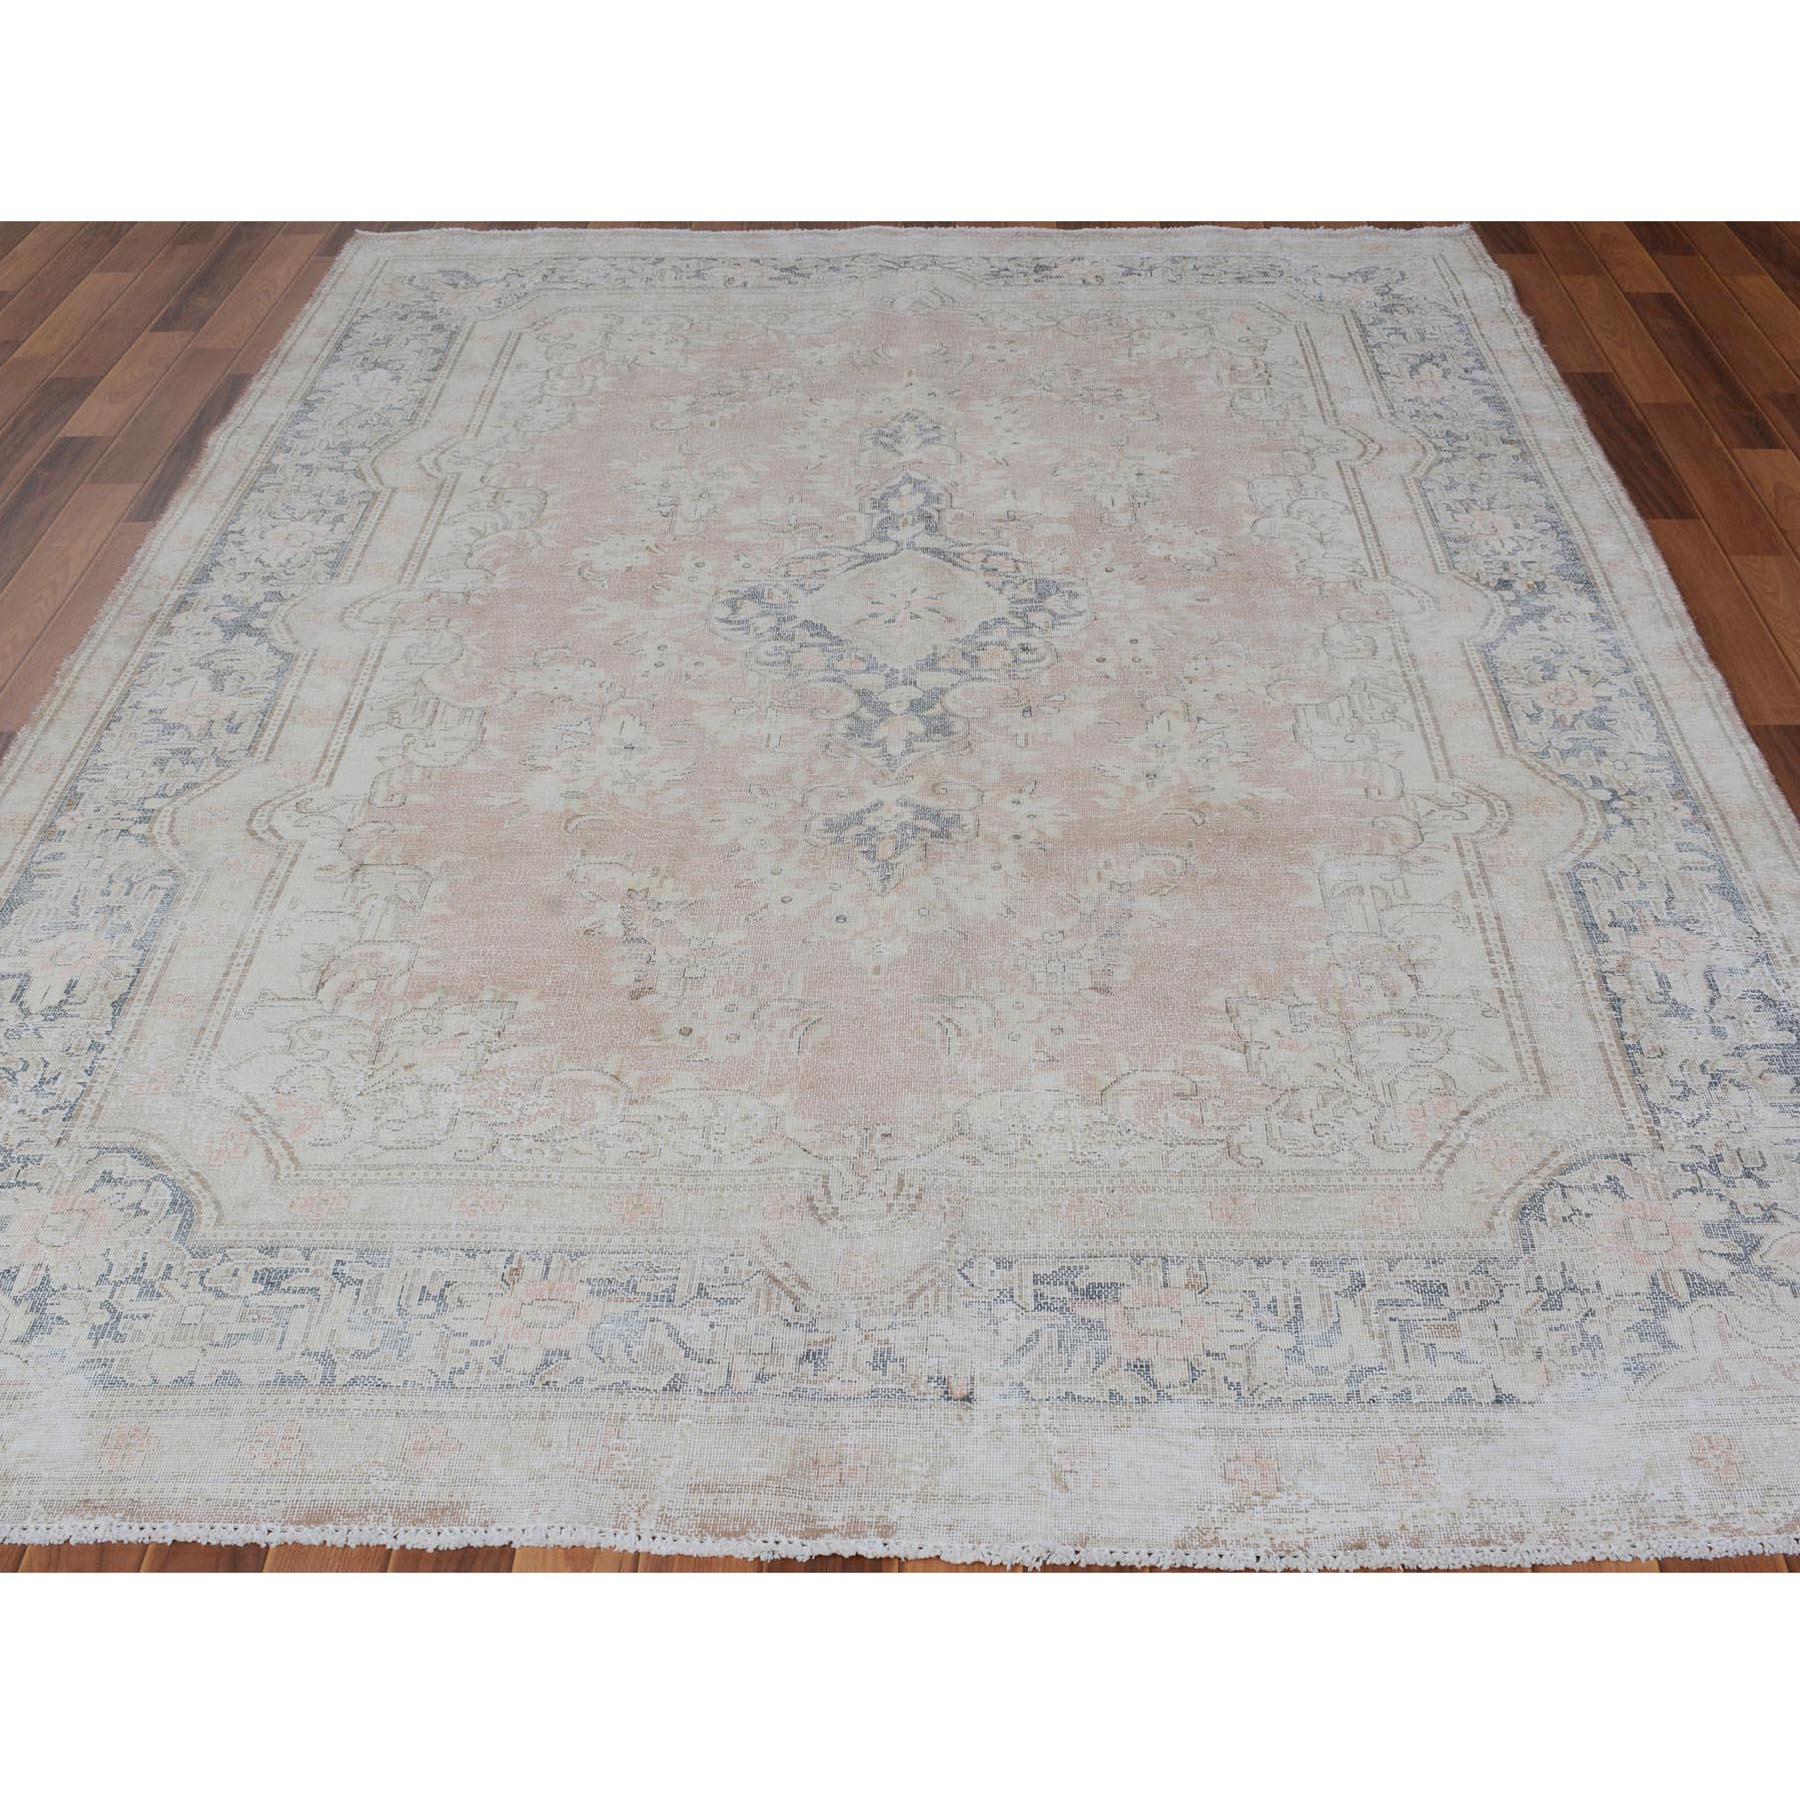 "6'5""x9'4"" Faded Coral Vintage and Worn Down Persian Kerman Hand Woven Pure Wool Oriental Rug"